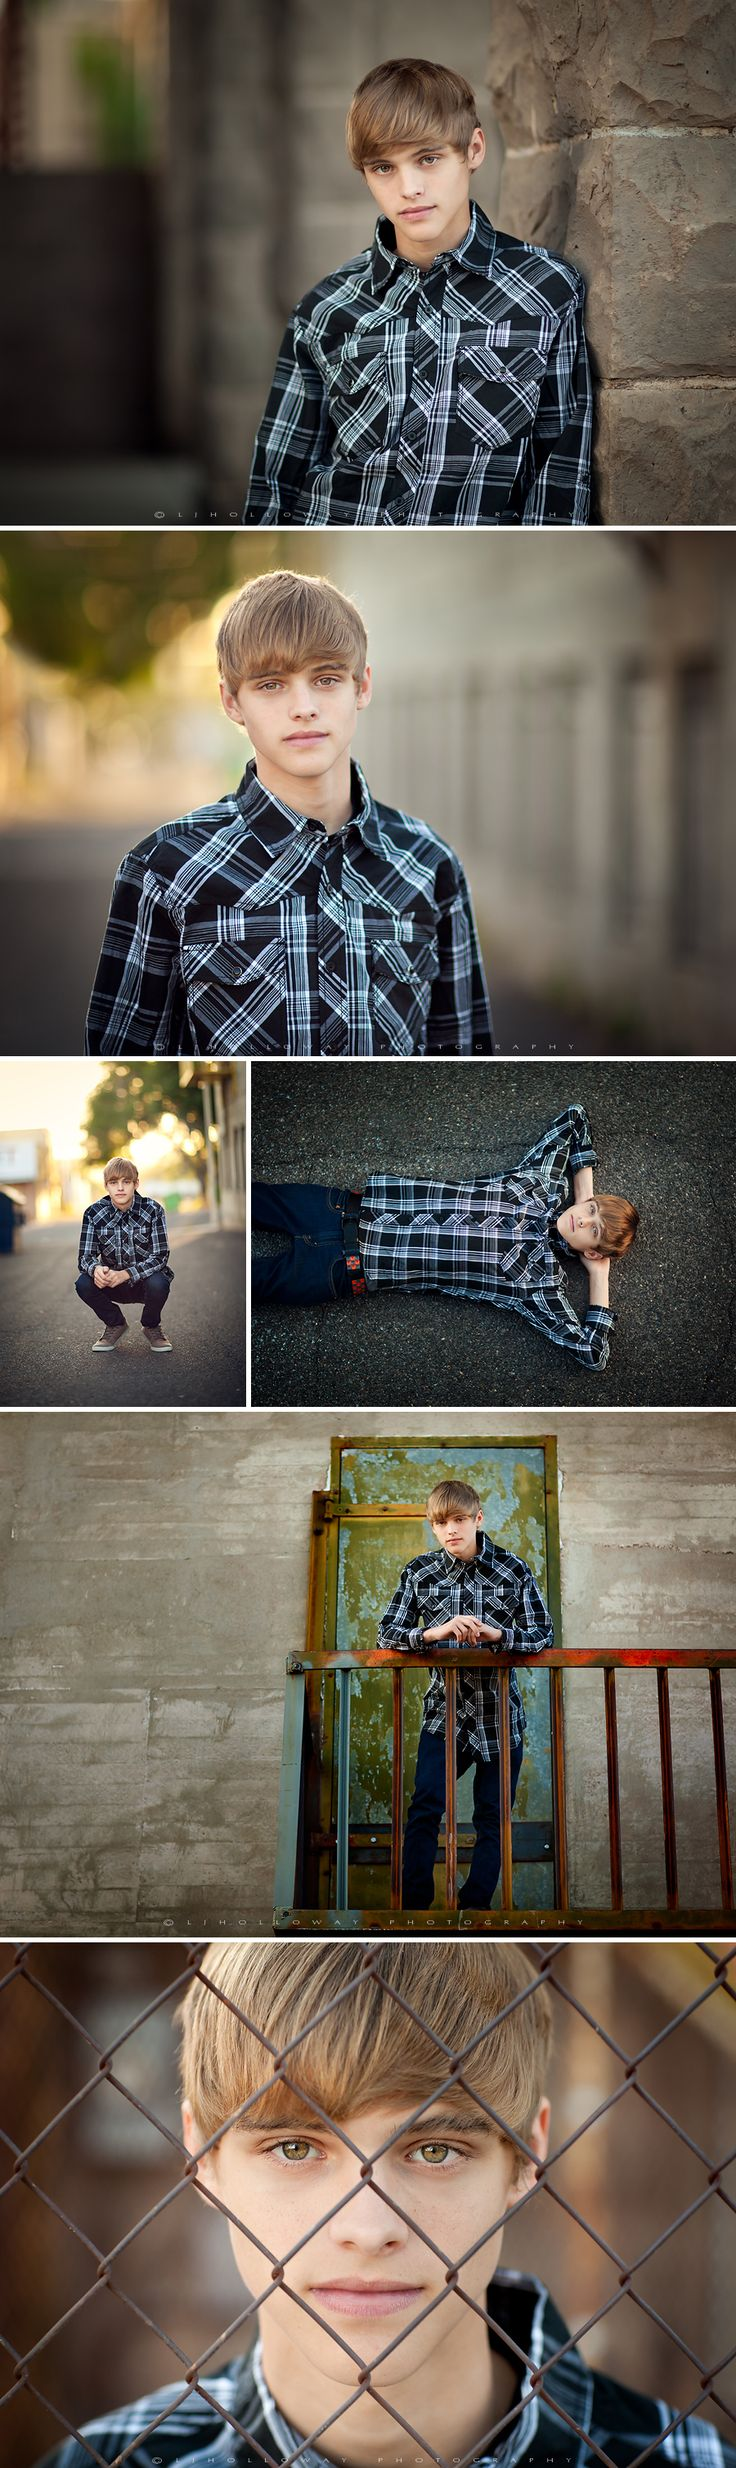 great teen shots by LHalloway photography, she is awesome.